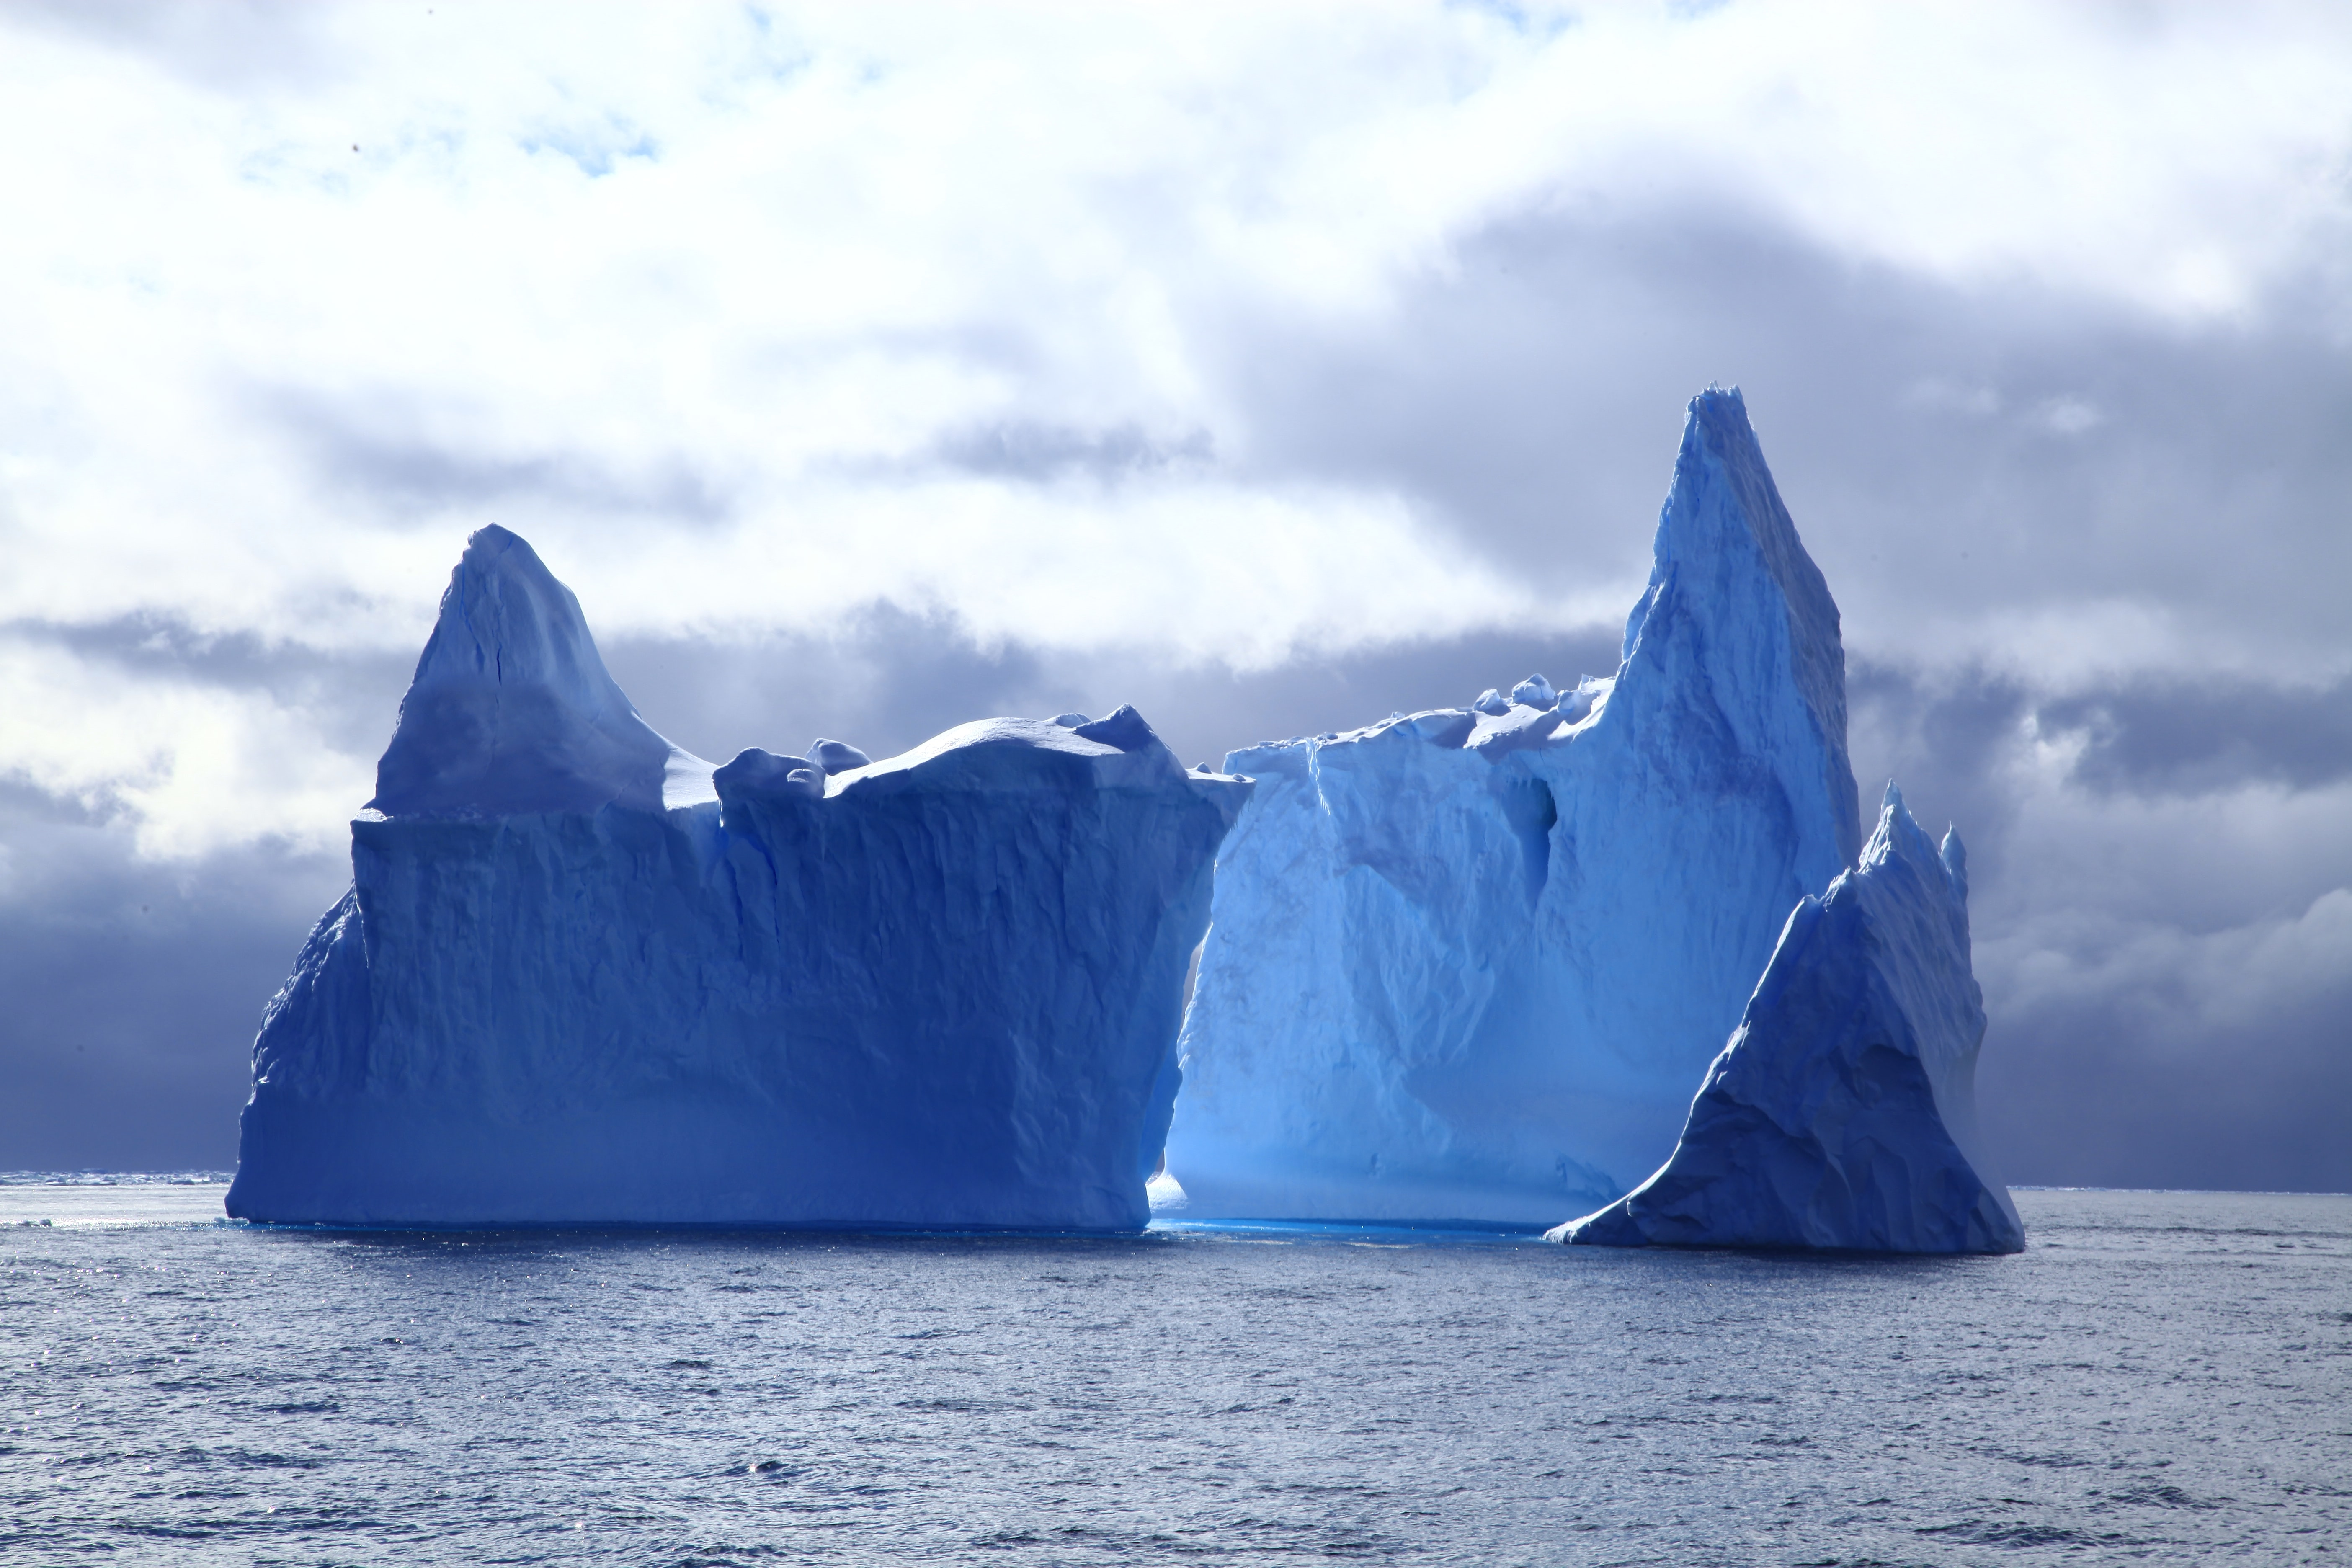 two icebergs under cloudy sky at daytime